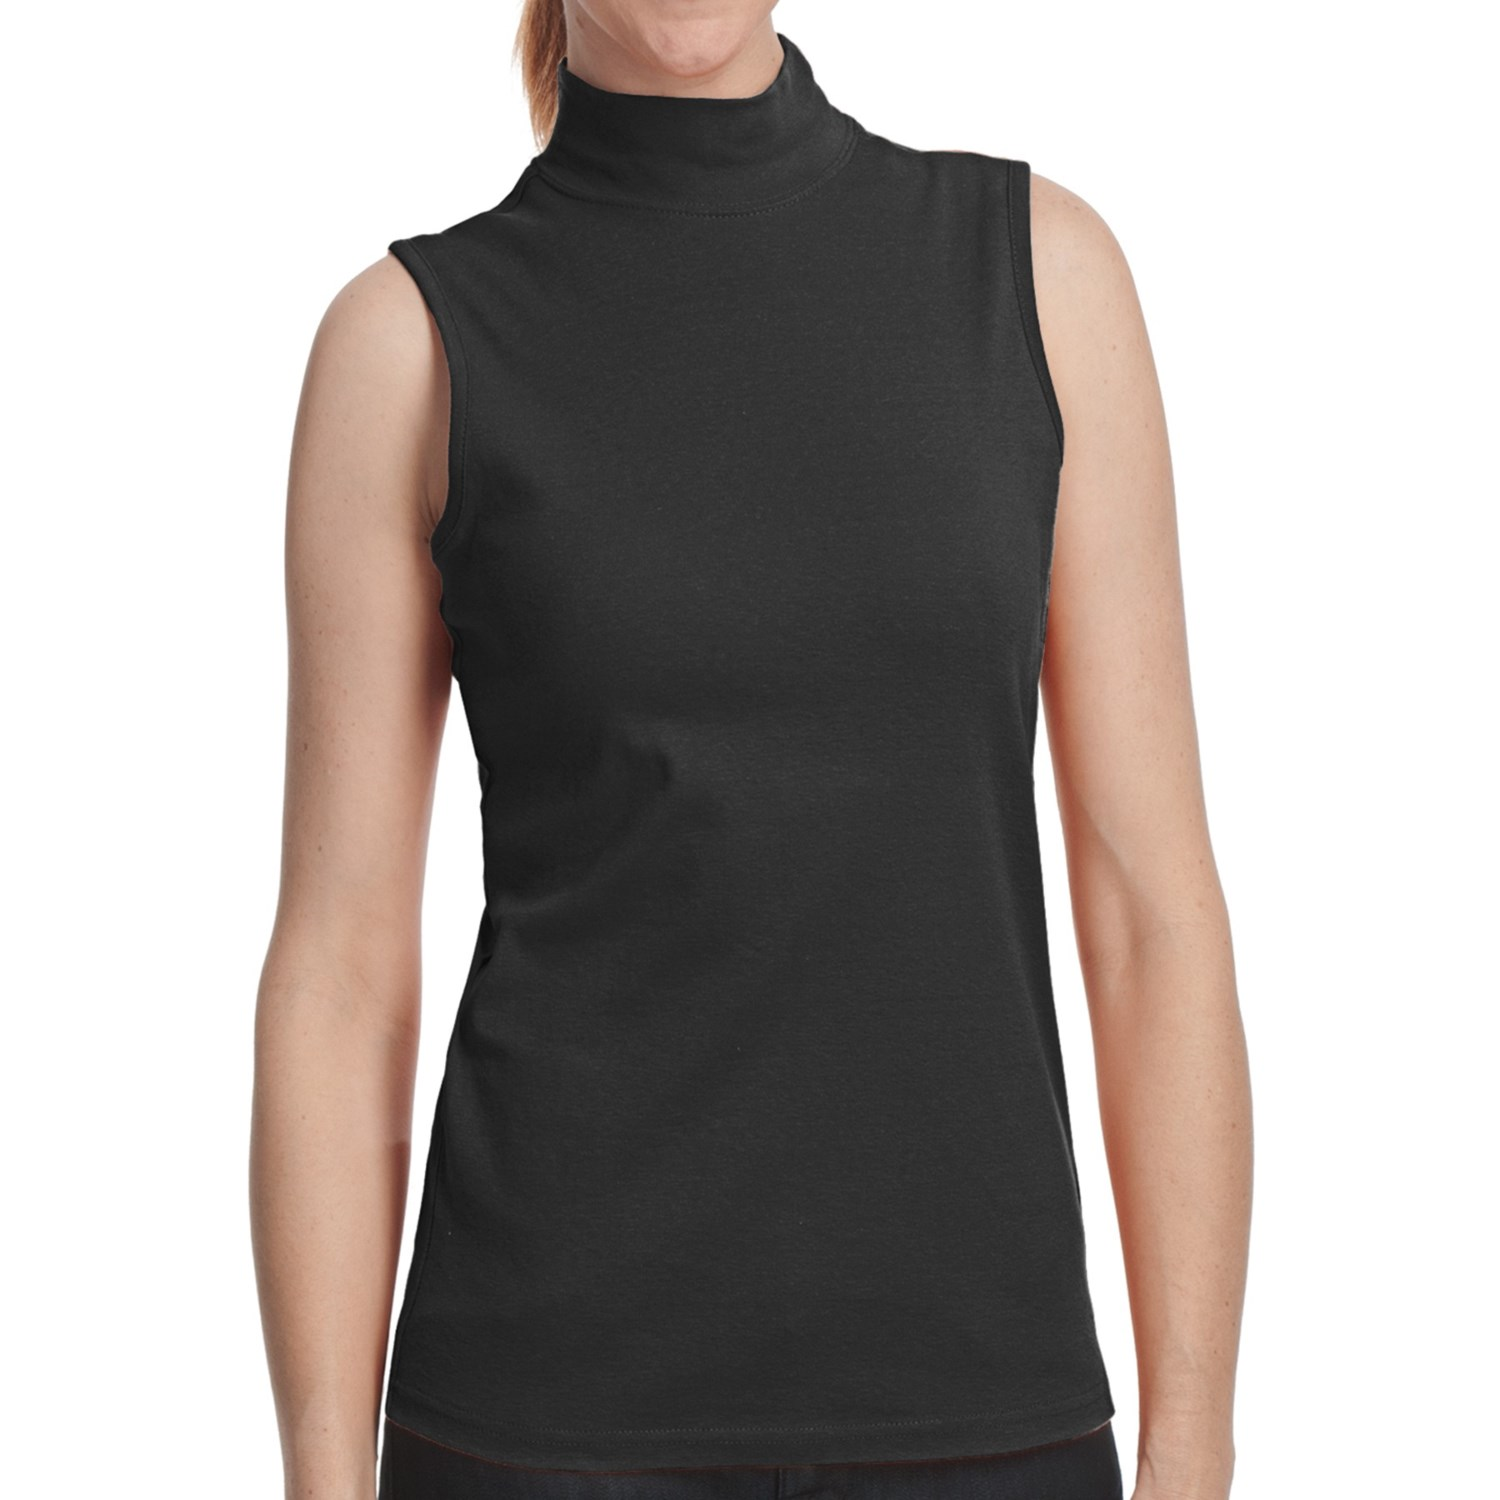 Mock neck shirt for women 5700y save 77 for Sleeveless mock turtleneck shirts